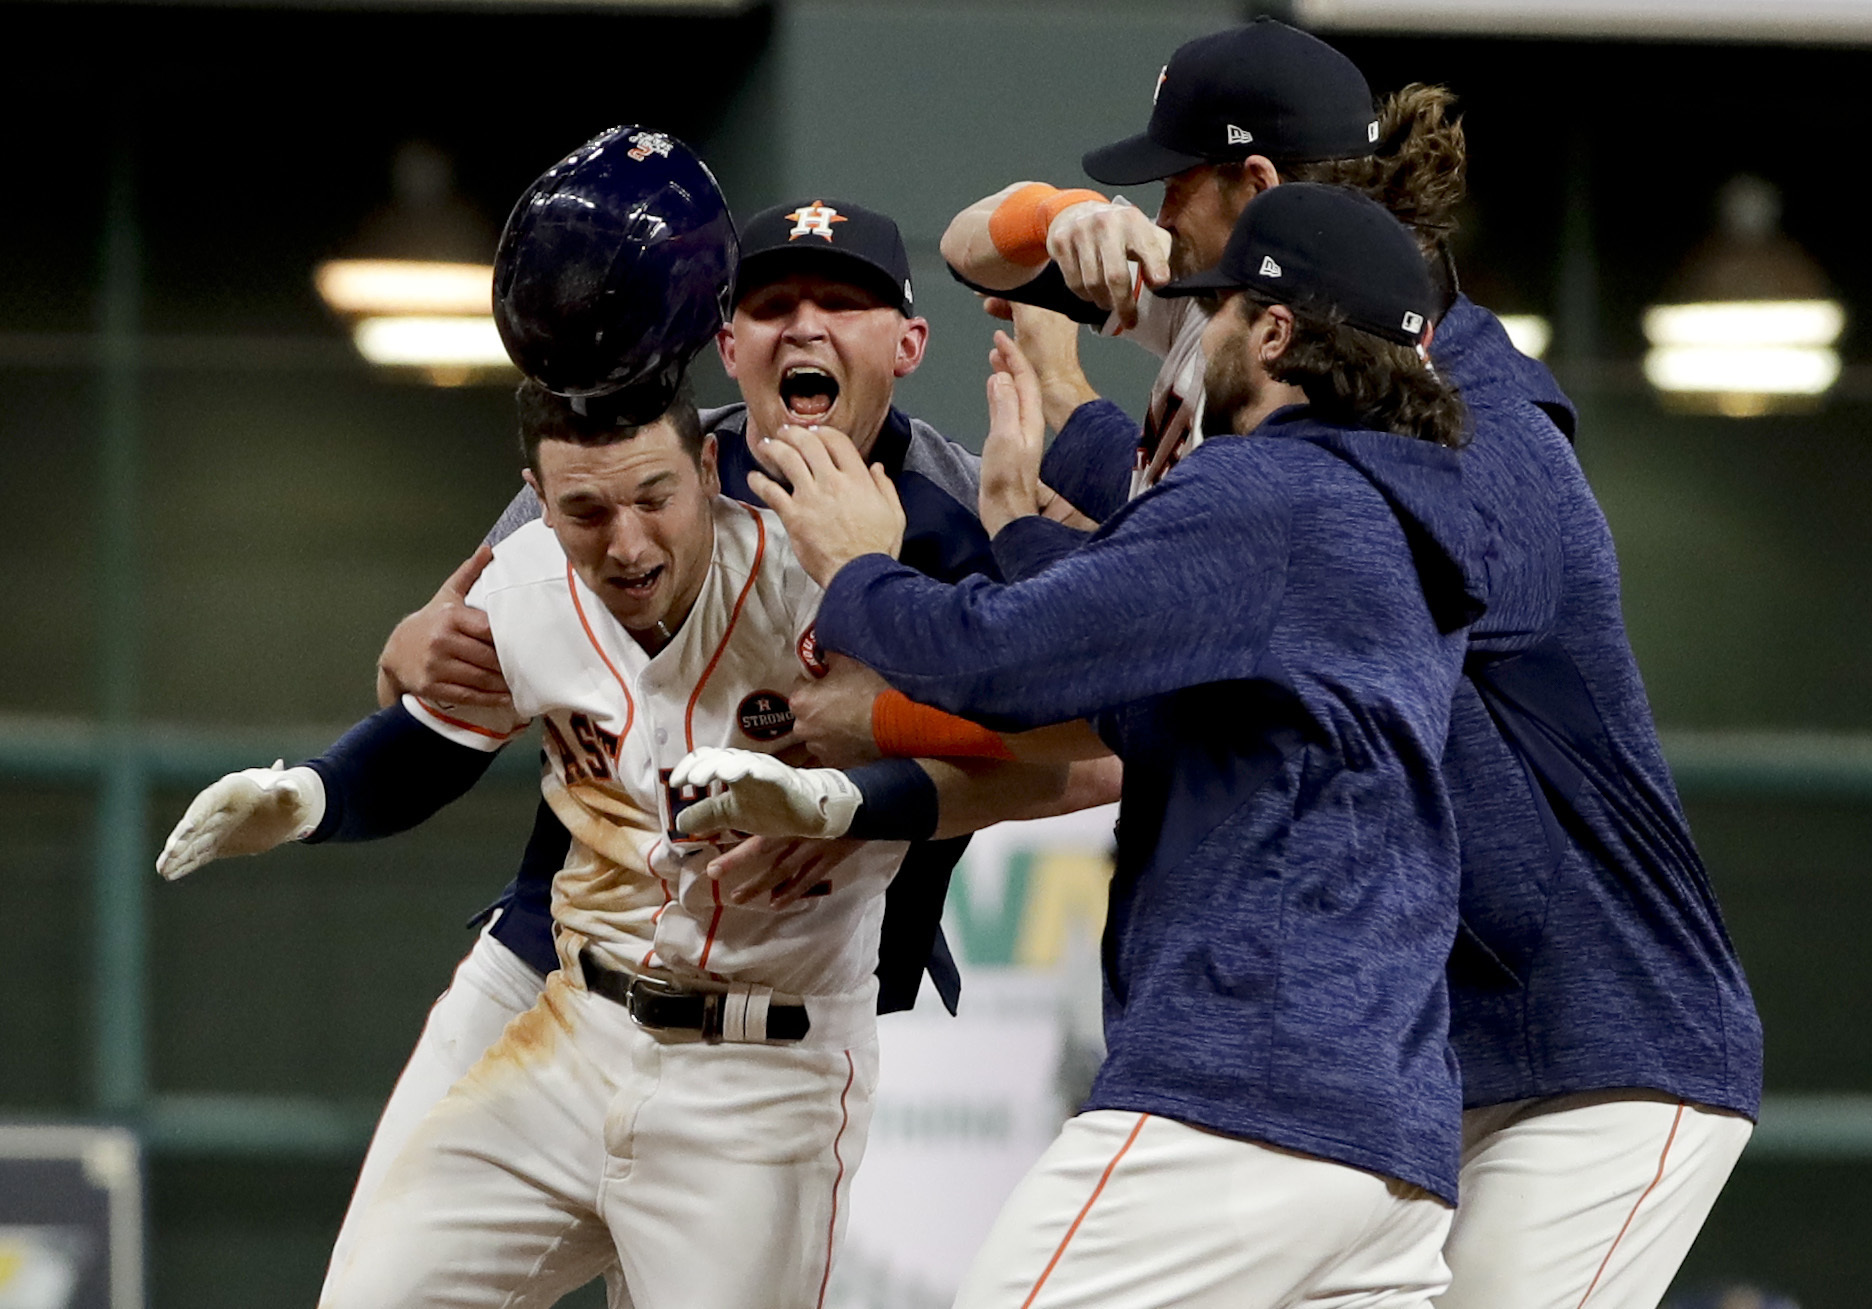 The Houston Astros celebrates after Alex Bregman (2) game winning single during Game 5 of baseball's World Series against the Los Angeles Dodgers Monday, Oct. 30, 2017, in Houston. Astros won 13-12. (AP Photo/Matt Slocum)